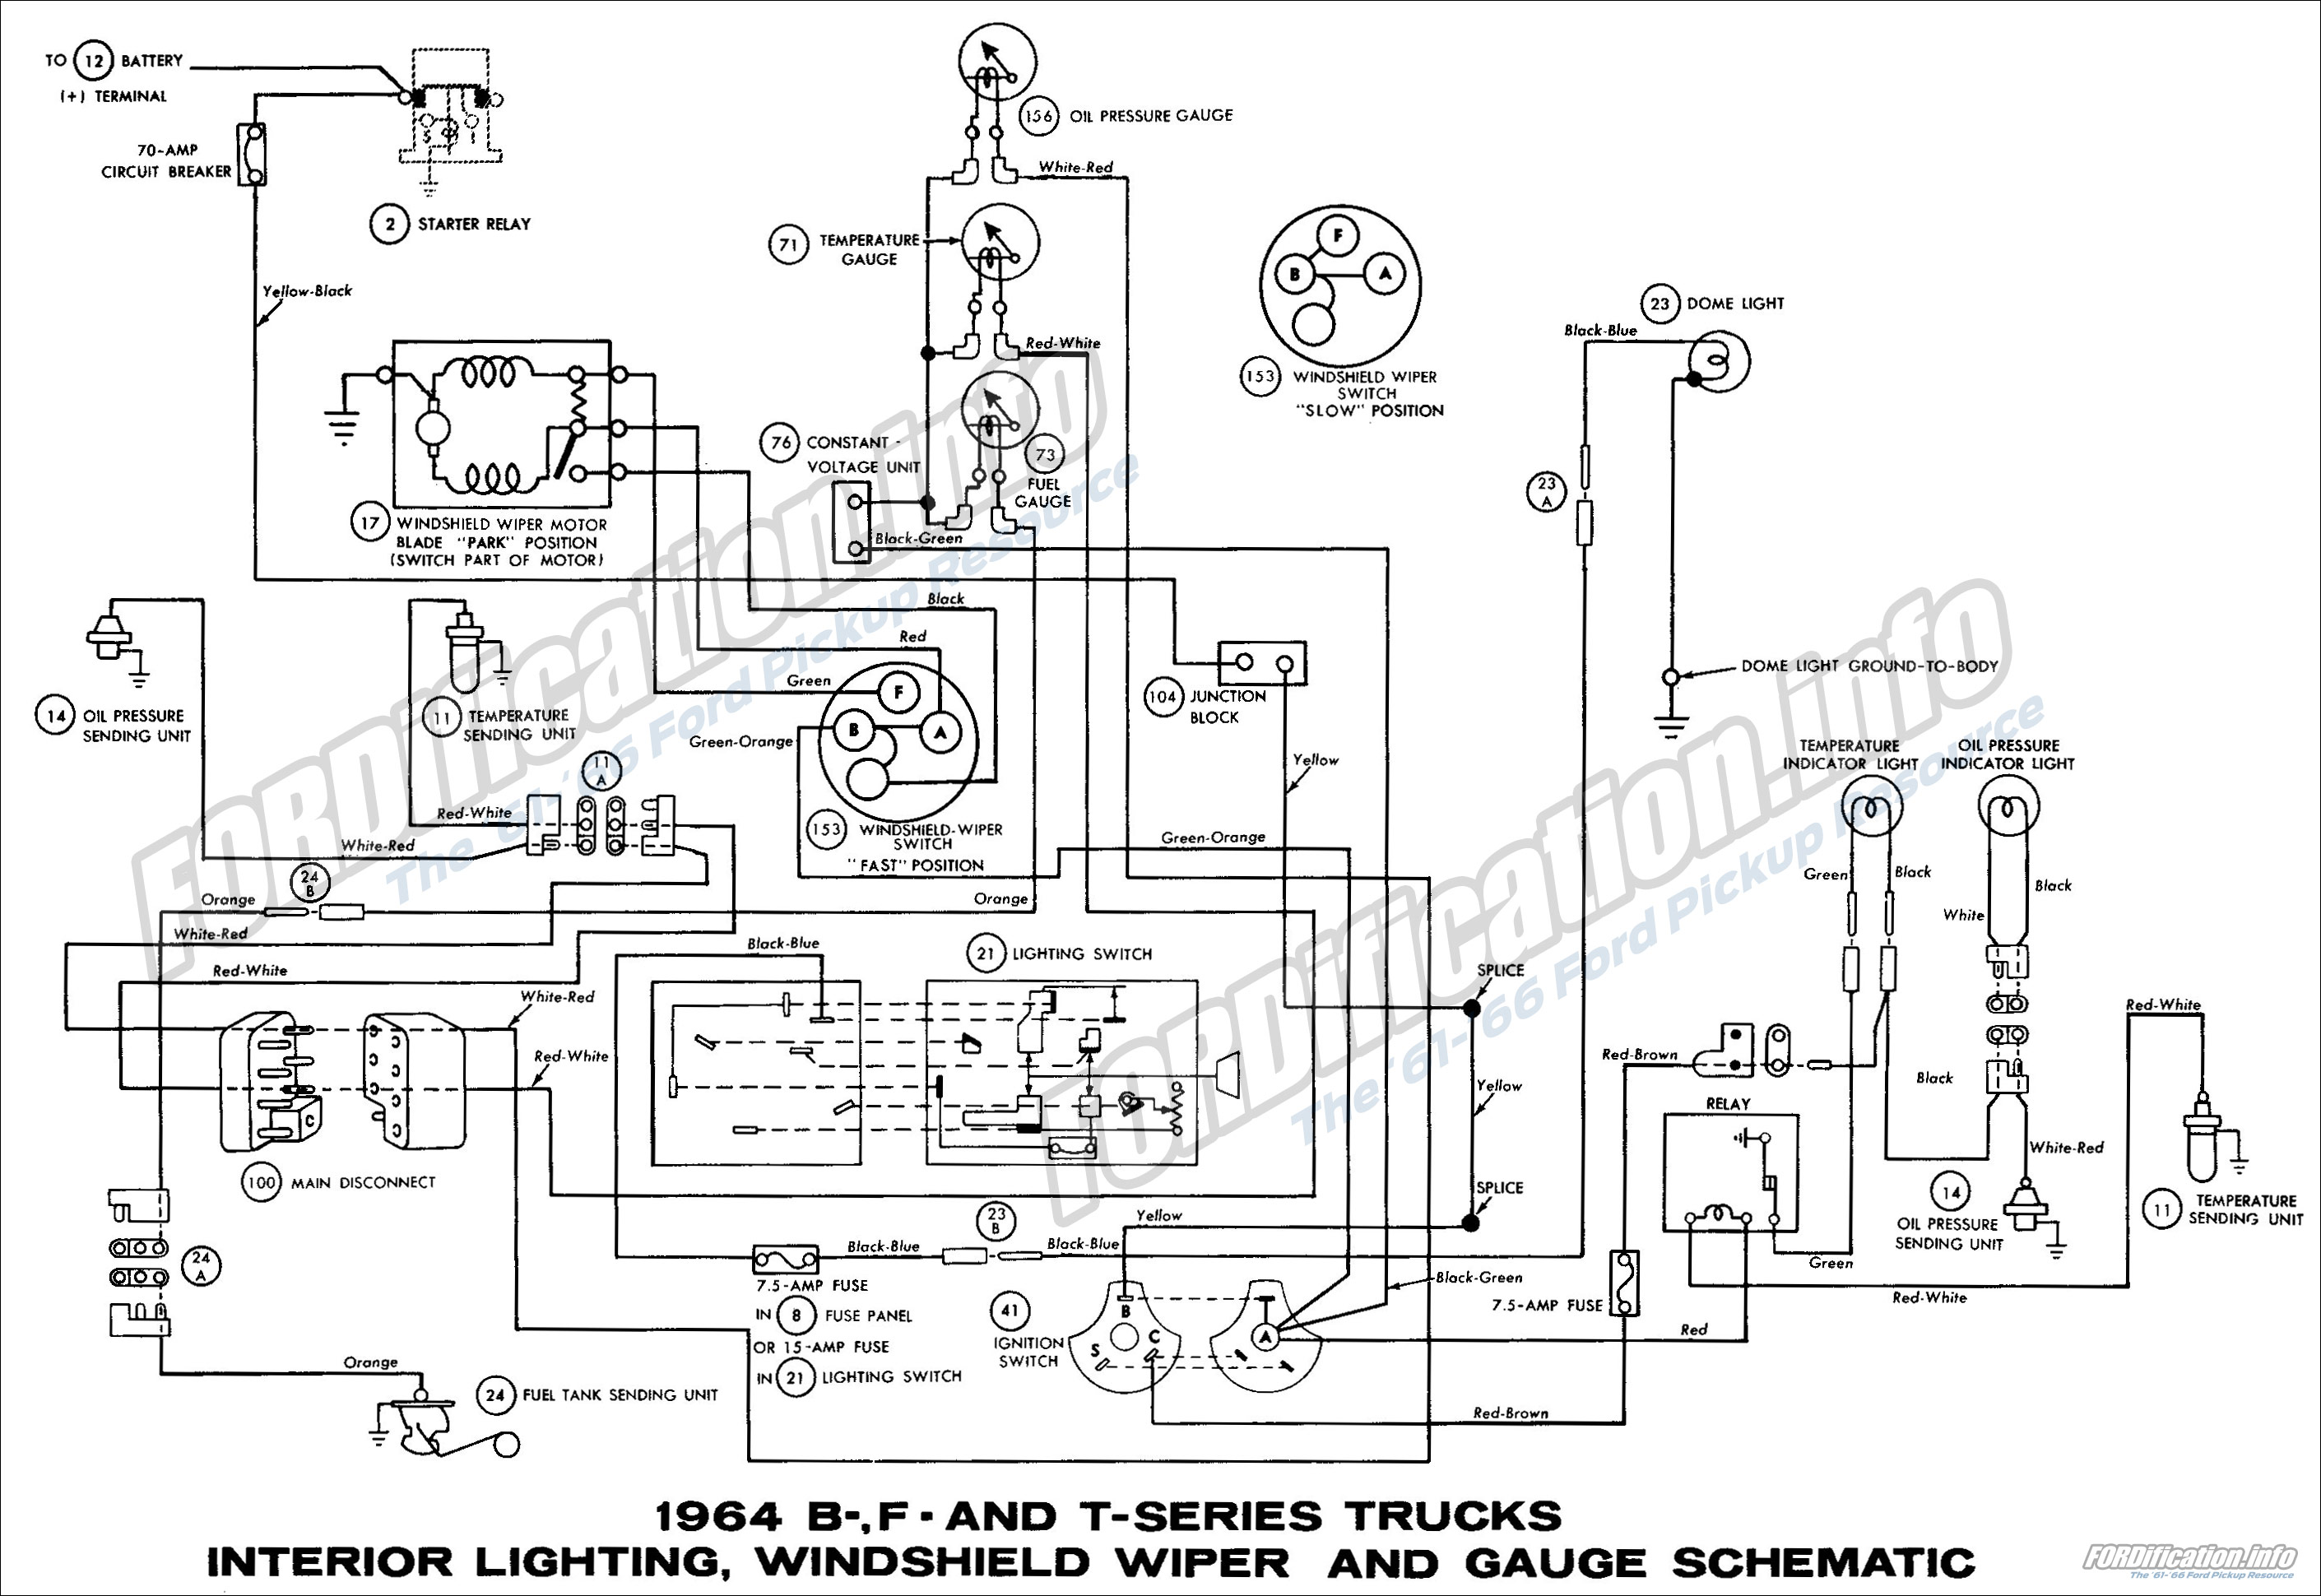 1964 ford ignition switch diagram international 4700 wiring truck diagrams fordification info the